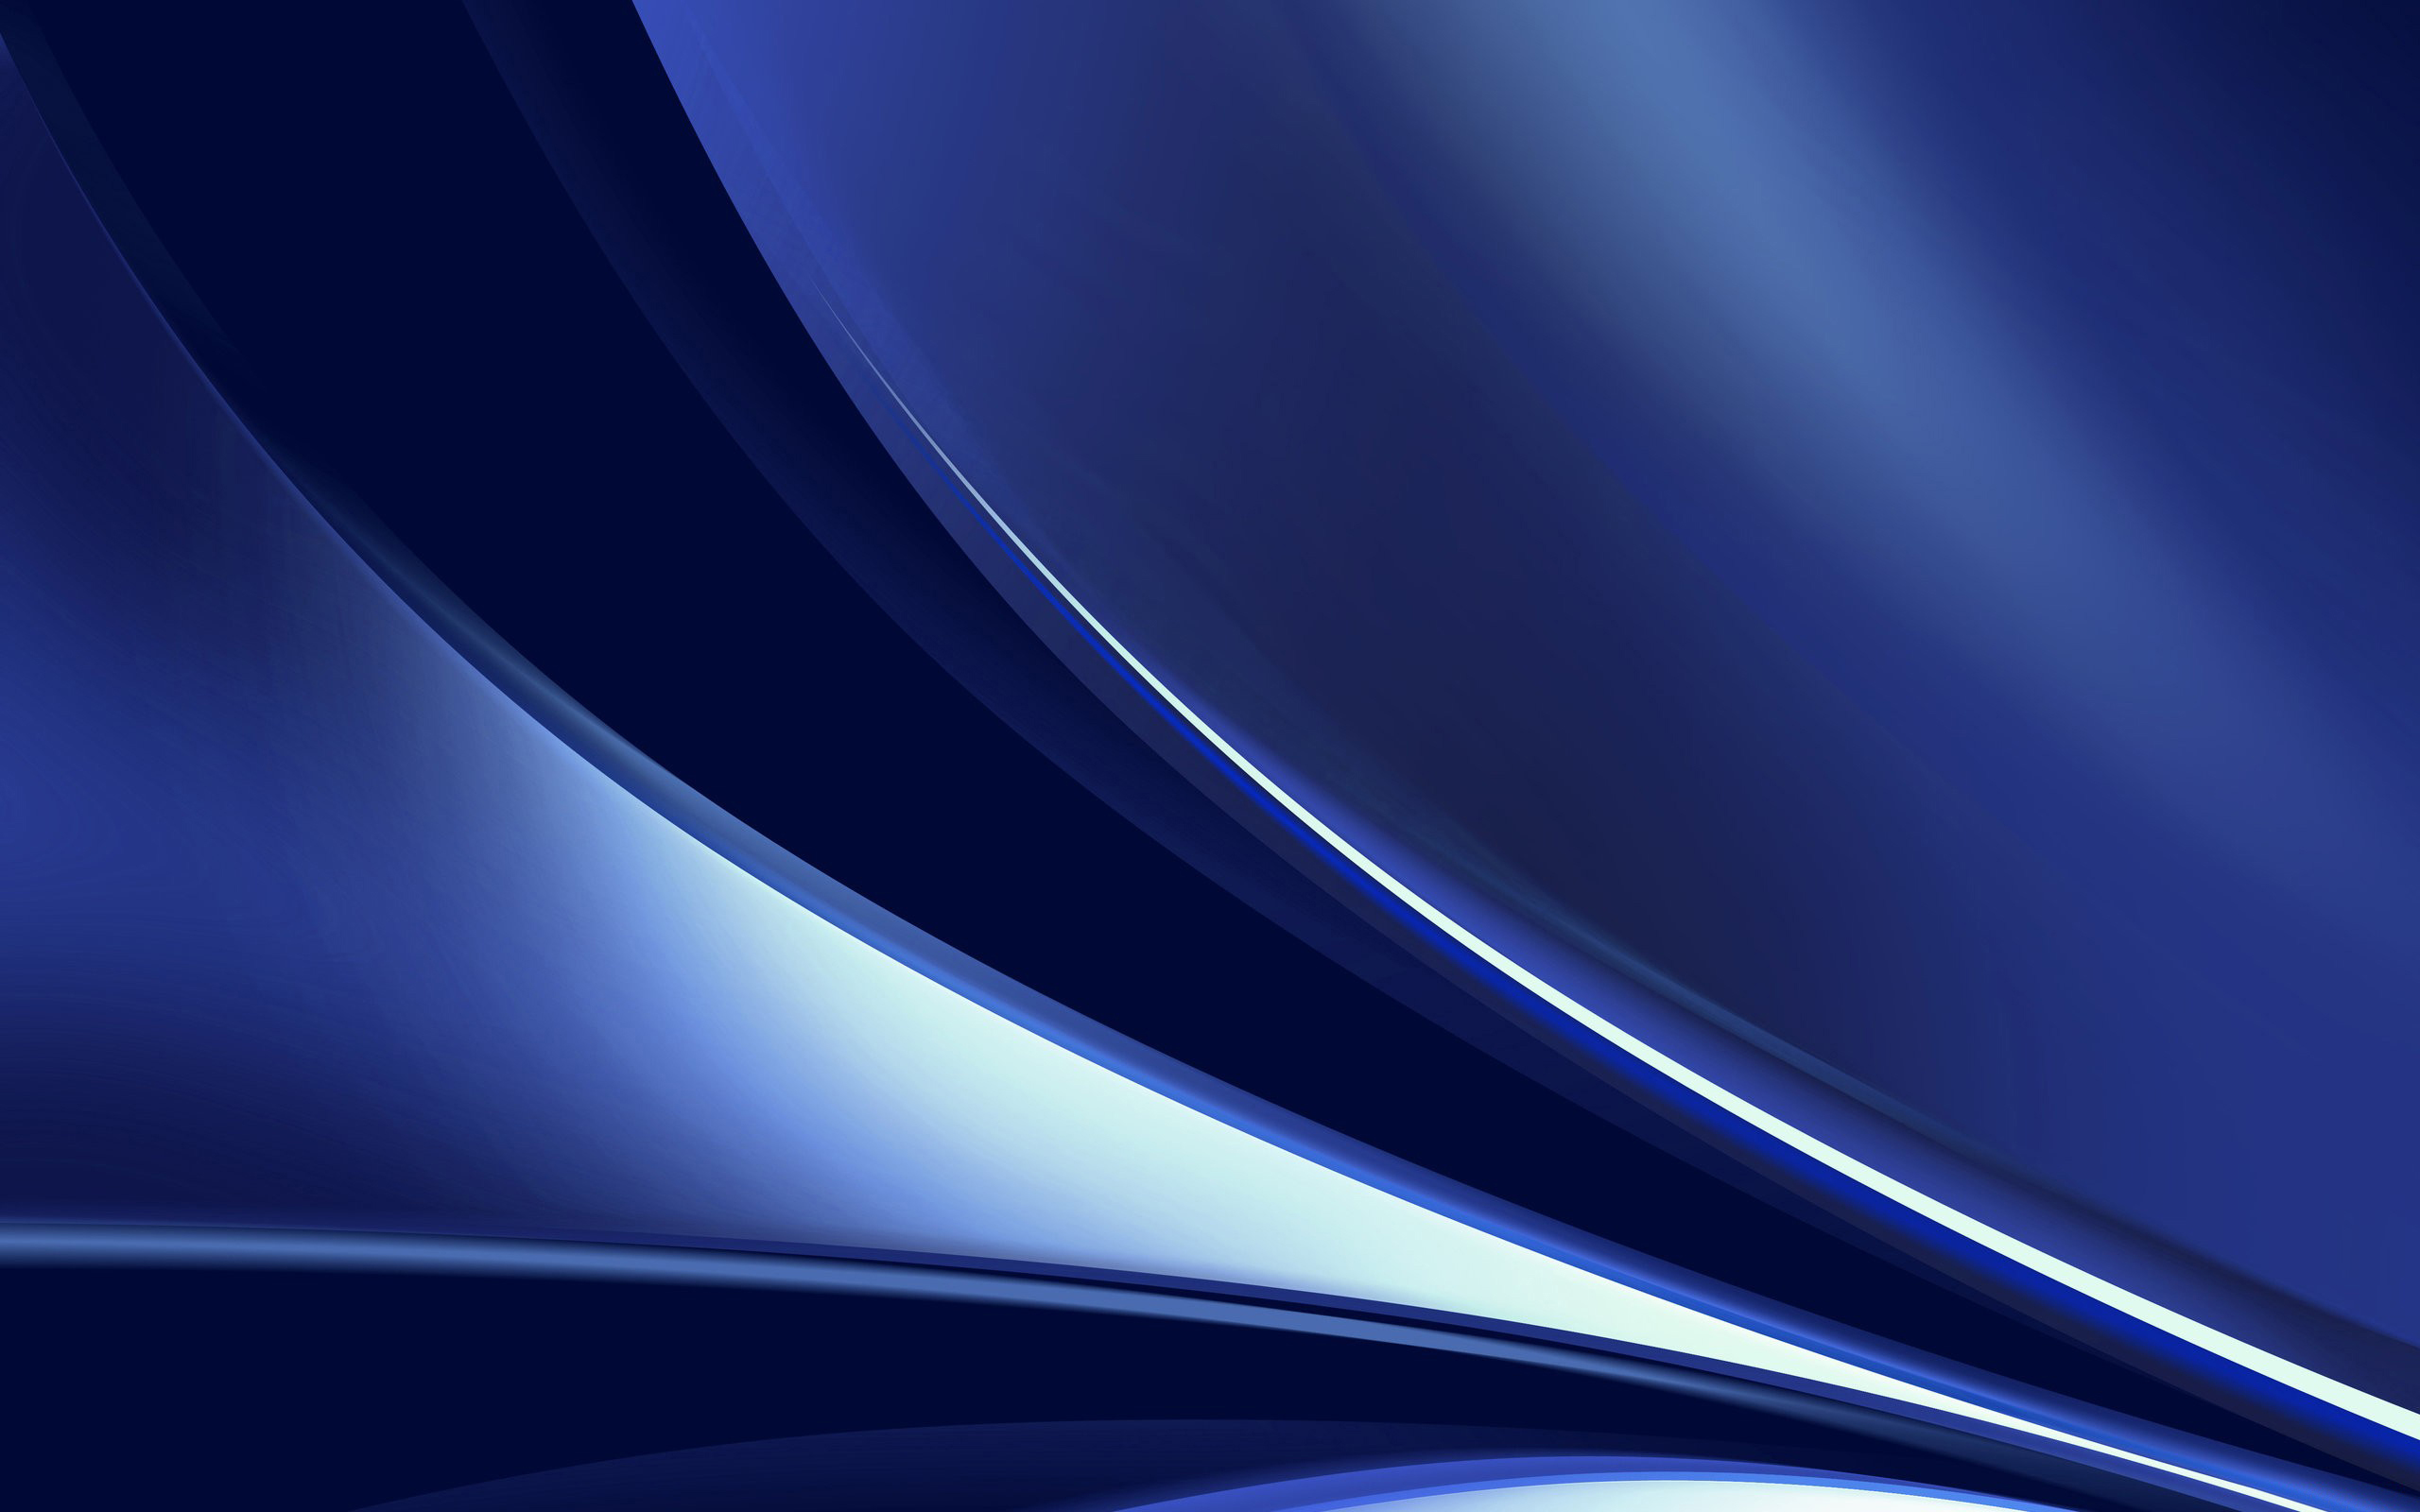 HDoboi.Kiev.ua - Синяя абстракция, abstract wallpaper hd blue